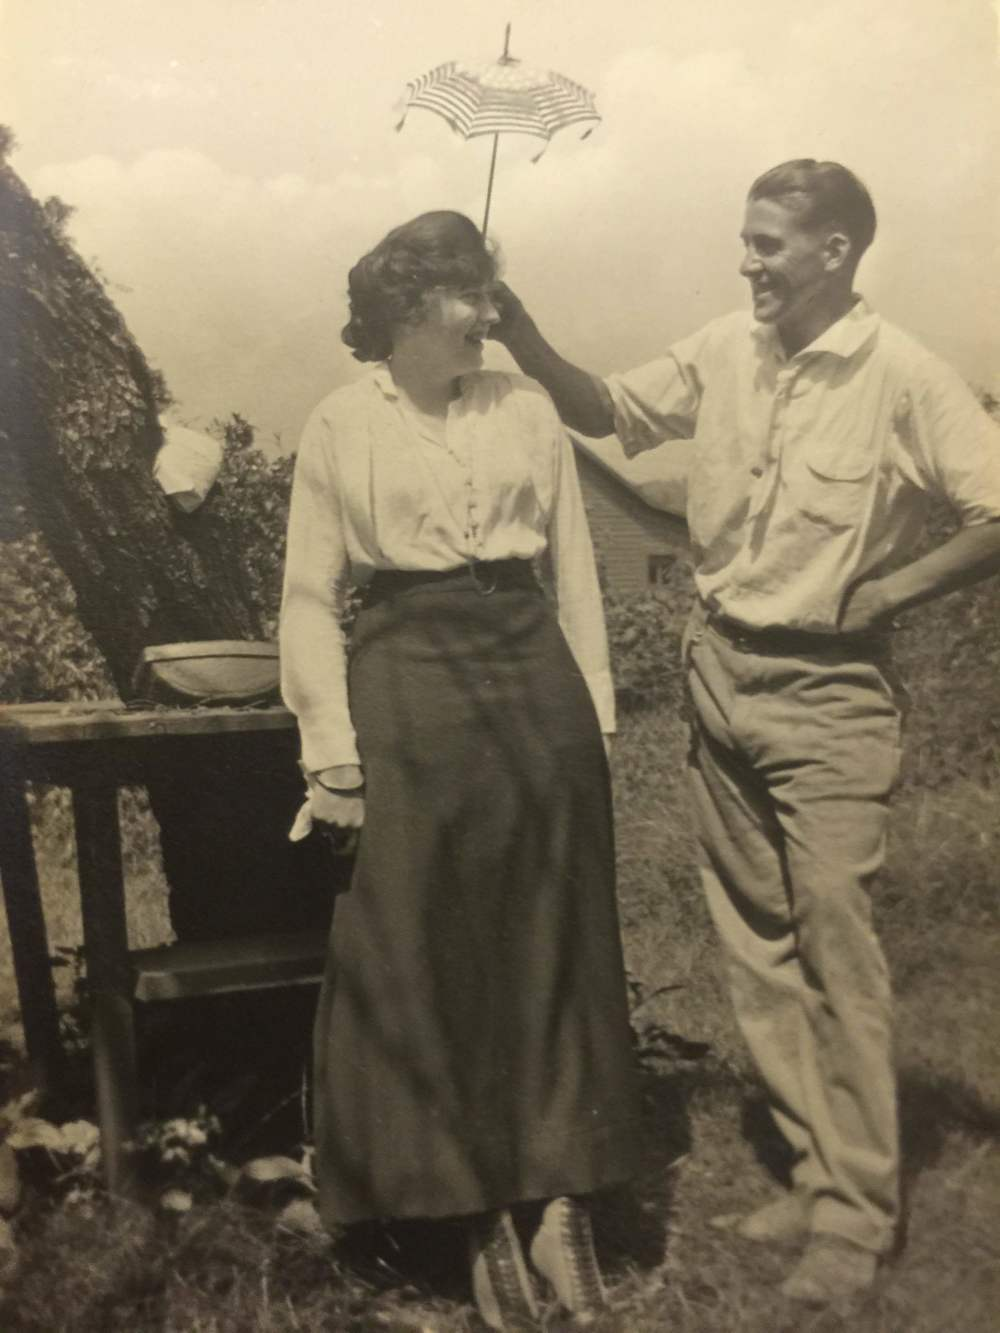 Evelyn Hazen with unknown man Mabry-Hazen Collection